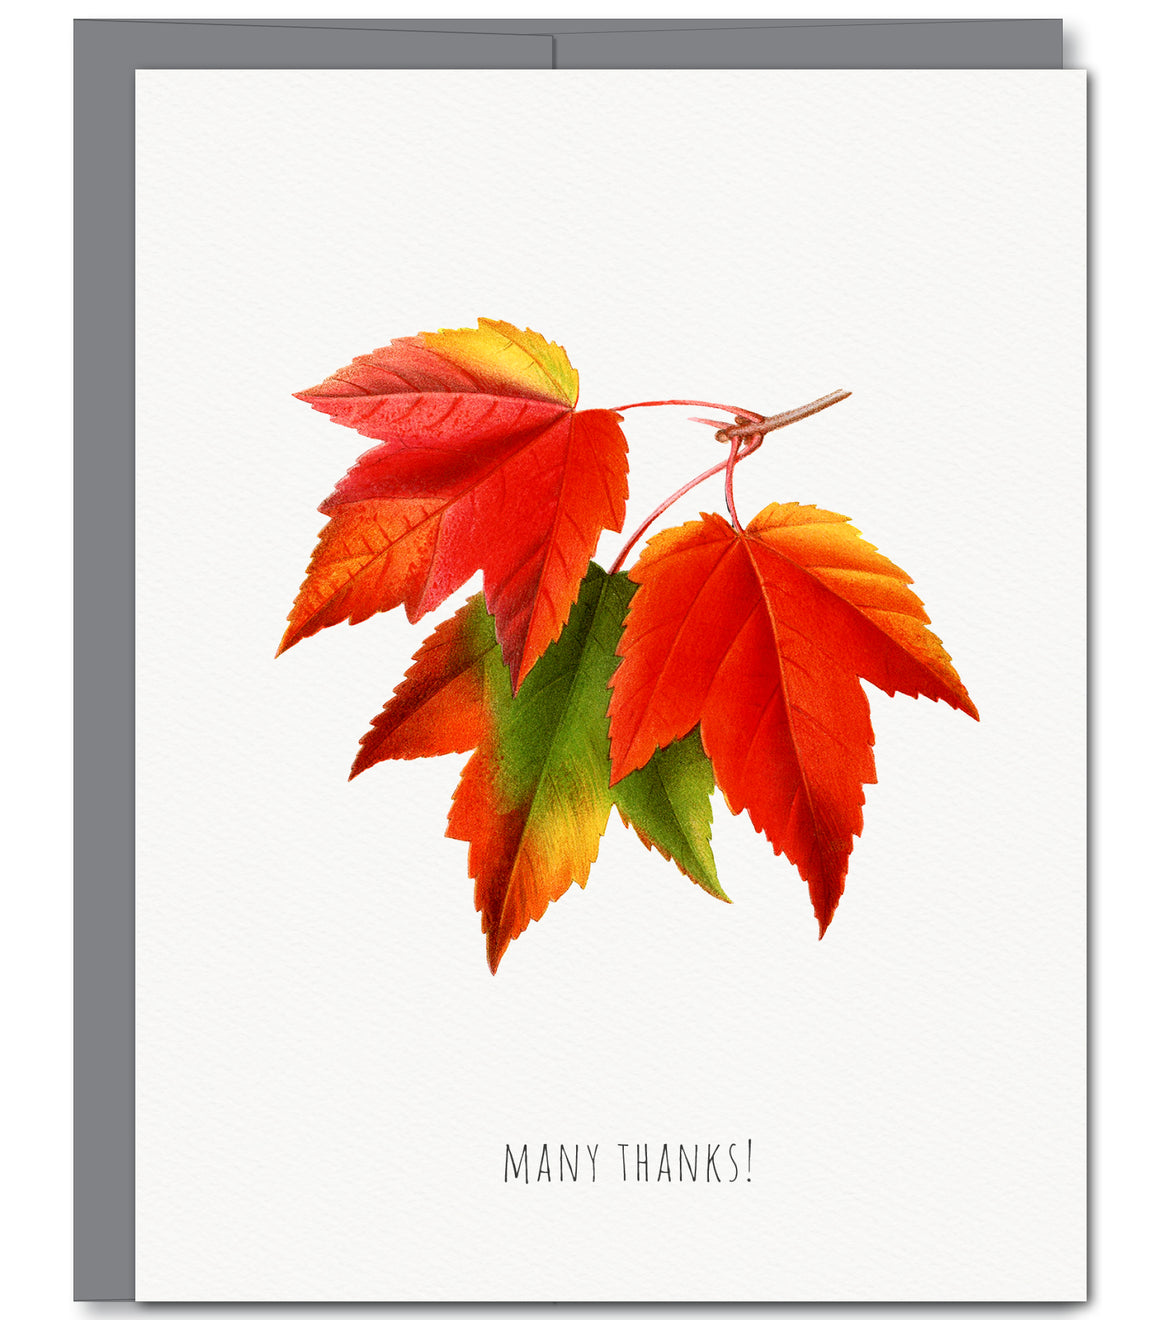 Autumn Leaves Thank You Glitter Greeting Card - Sylvan Gate Design